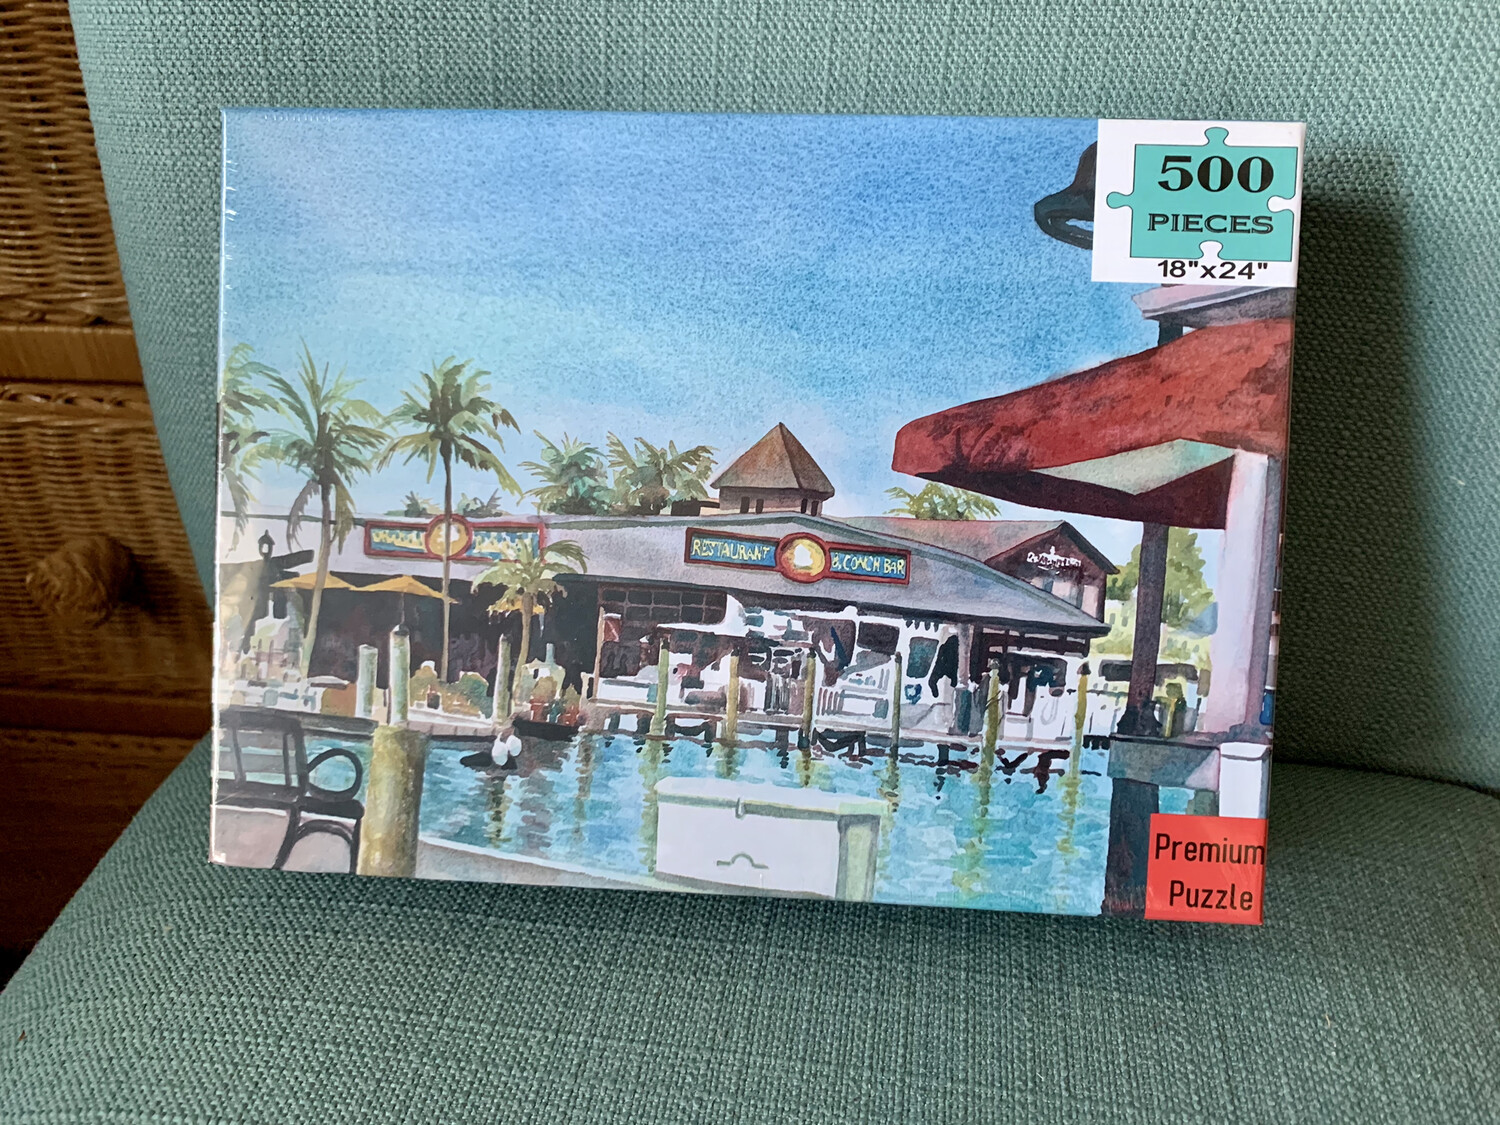 "PUZZLE - 500 Piece Conch Republic Seafood Company Key West Florida Keys Puzzle - Watercolor artwork designed by Brenda Ann - Assembled size 18""x24"""